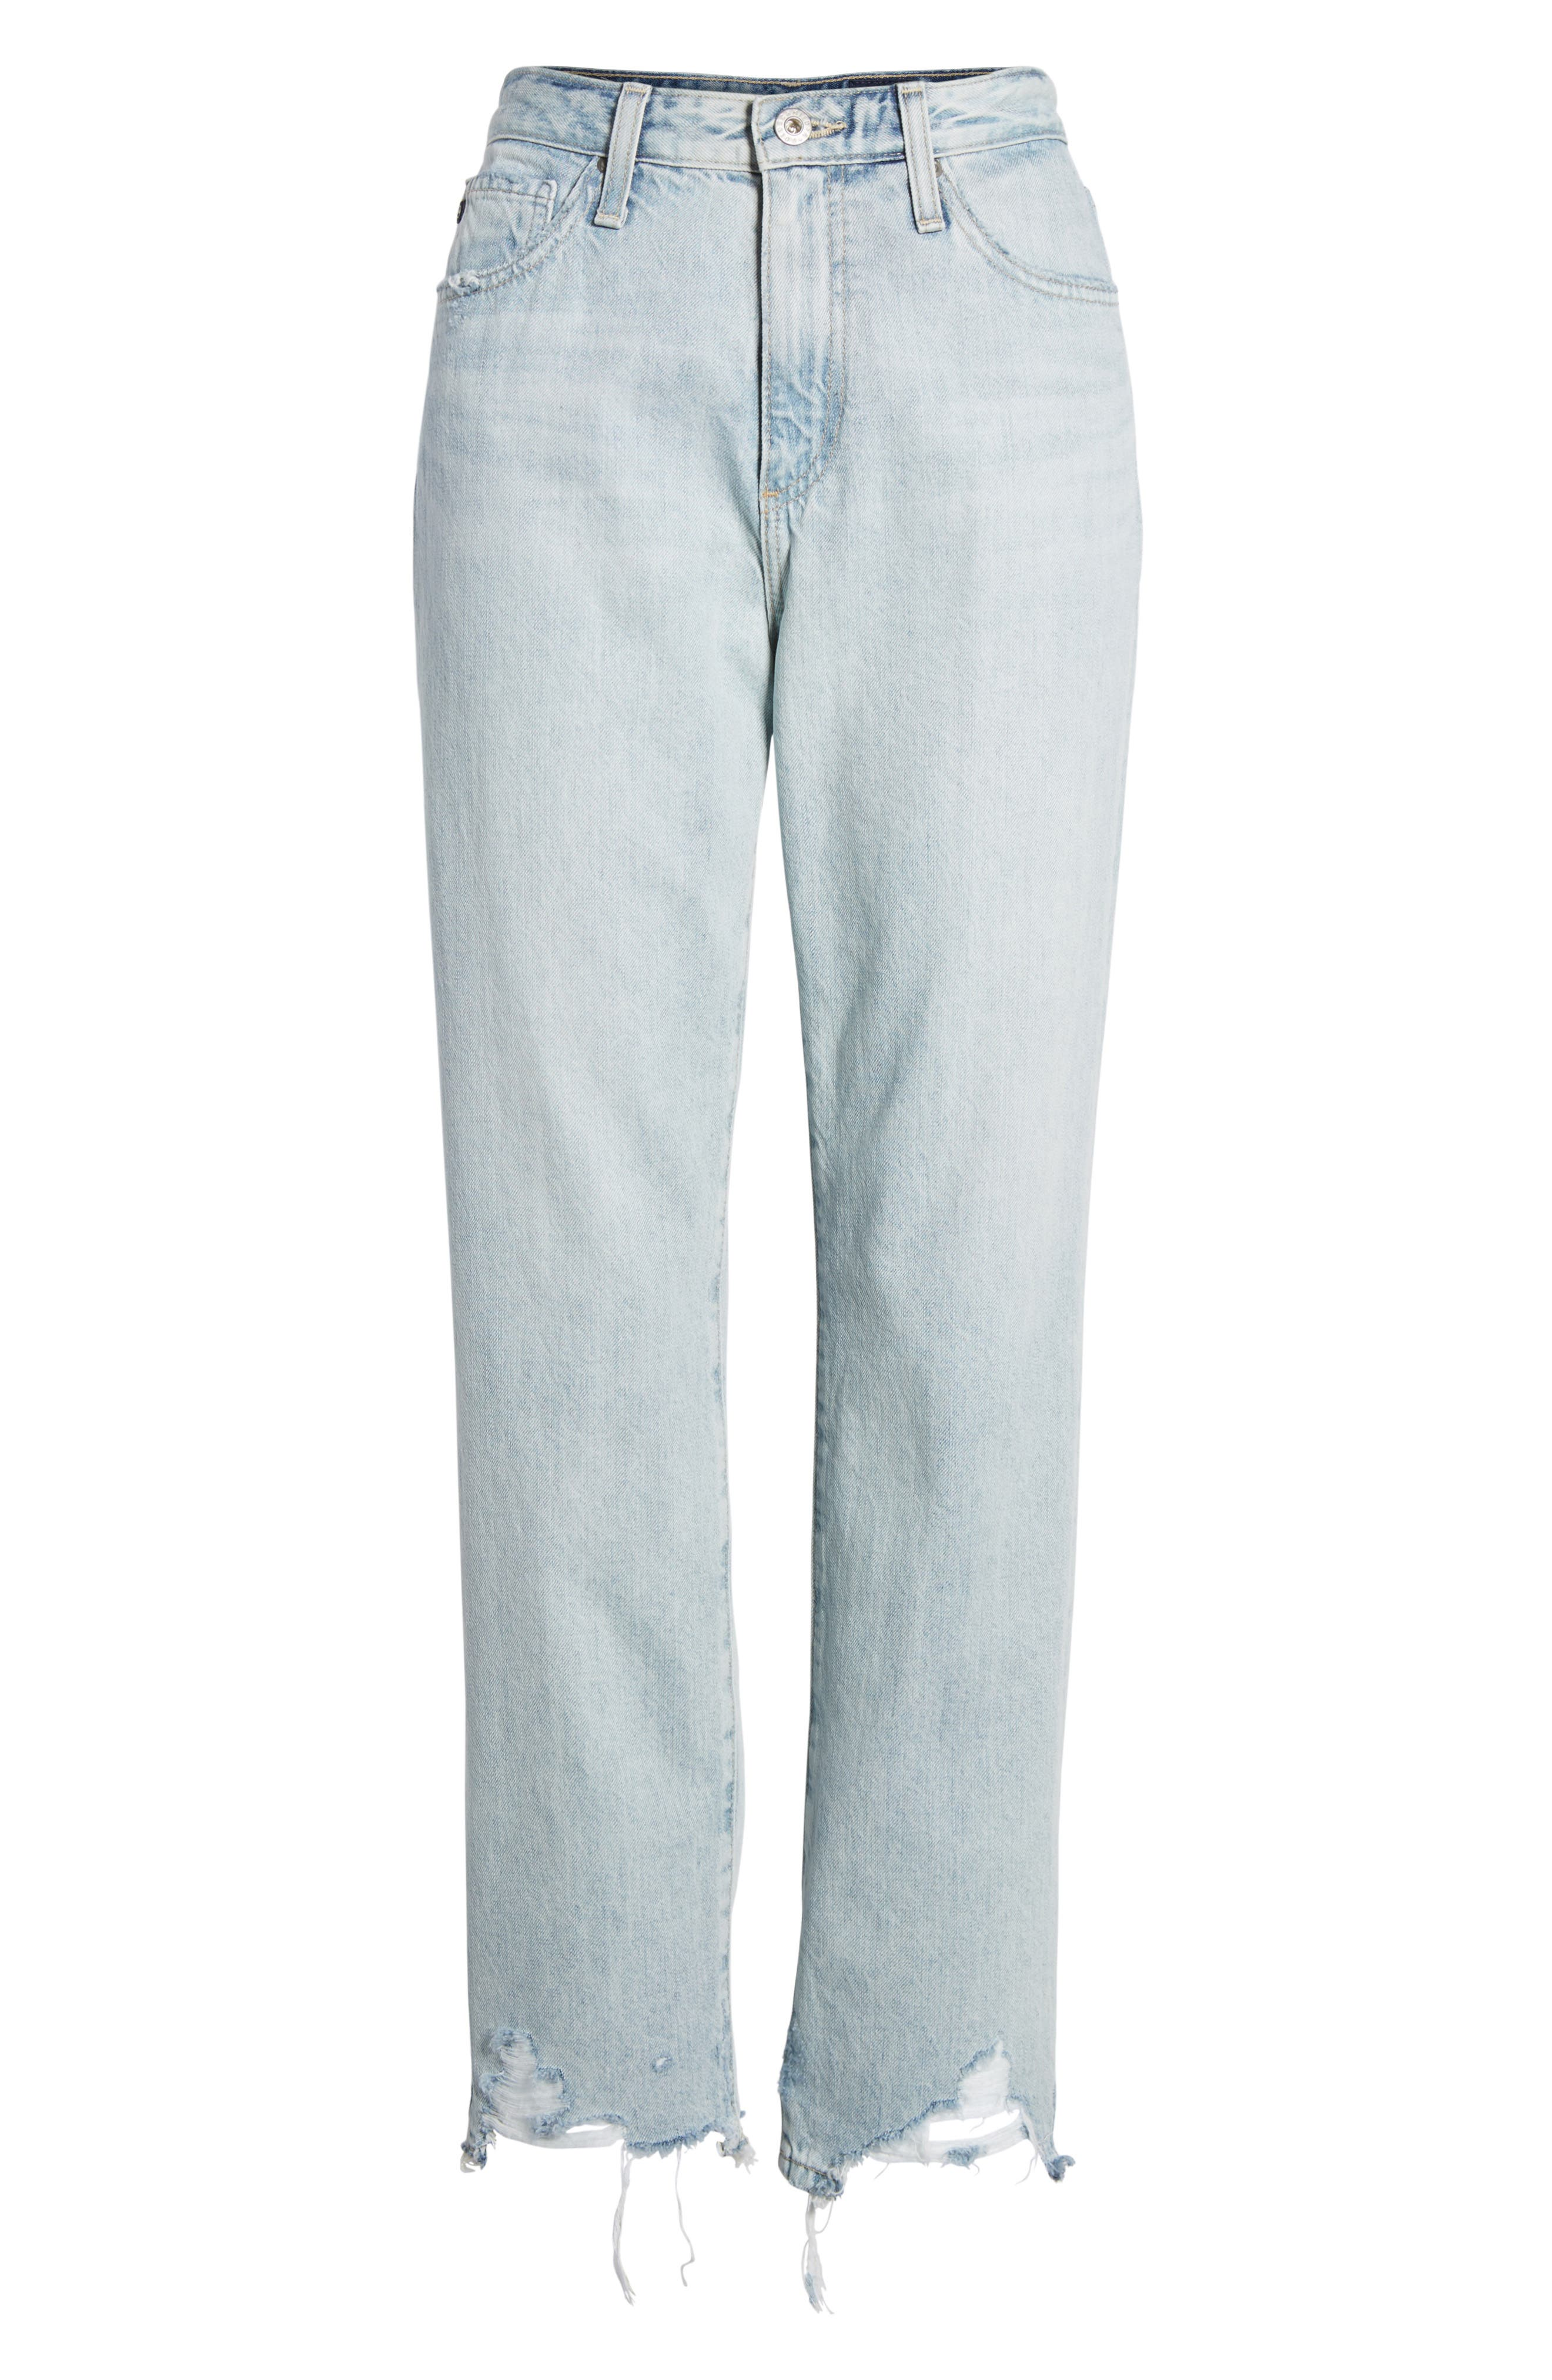 The Phoebe High Rise Straight Leg Jeans,                             Alternate thumbnail 11, color,                             Bering Wave